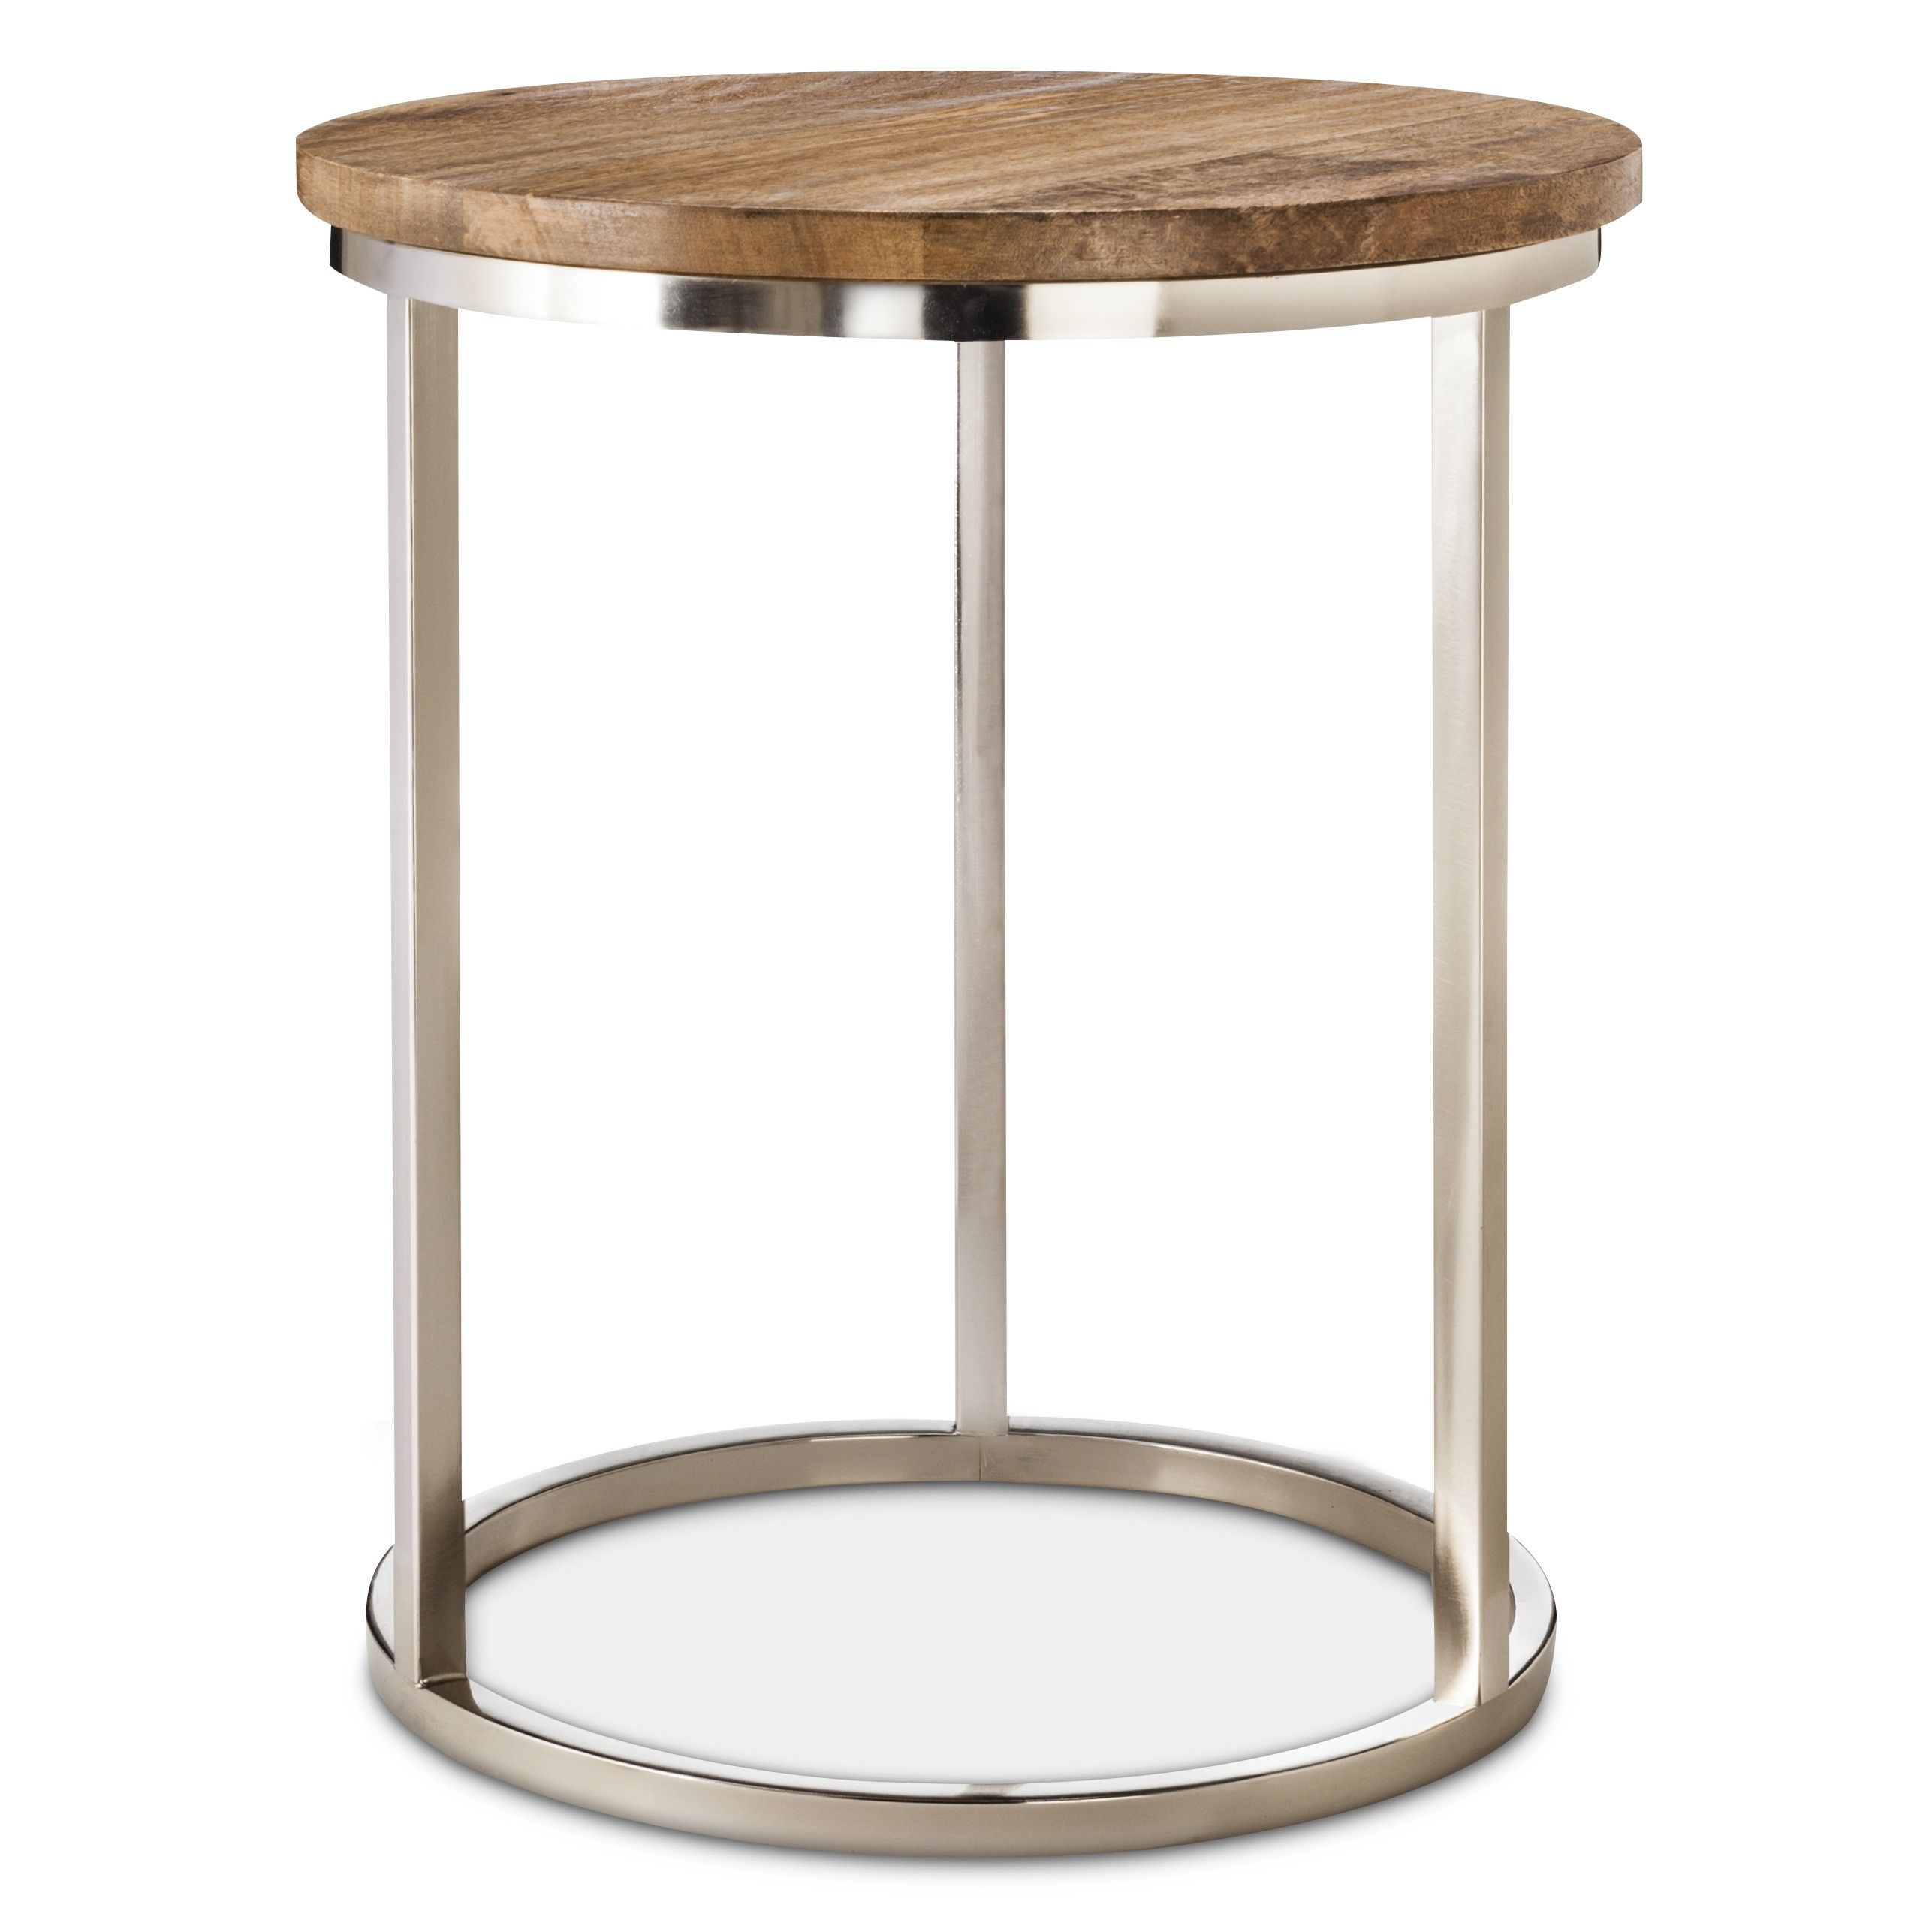 side table for glider threshold metal accent with wood top target black dining room and chairs contemporary chandeliers old lamp tables patio coffee ideas drum stool white clock